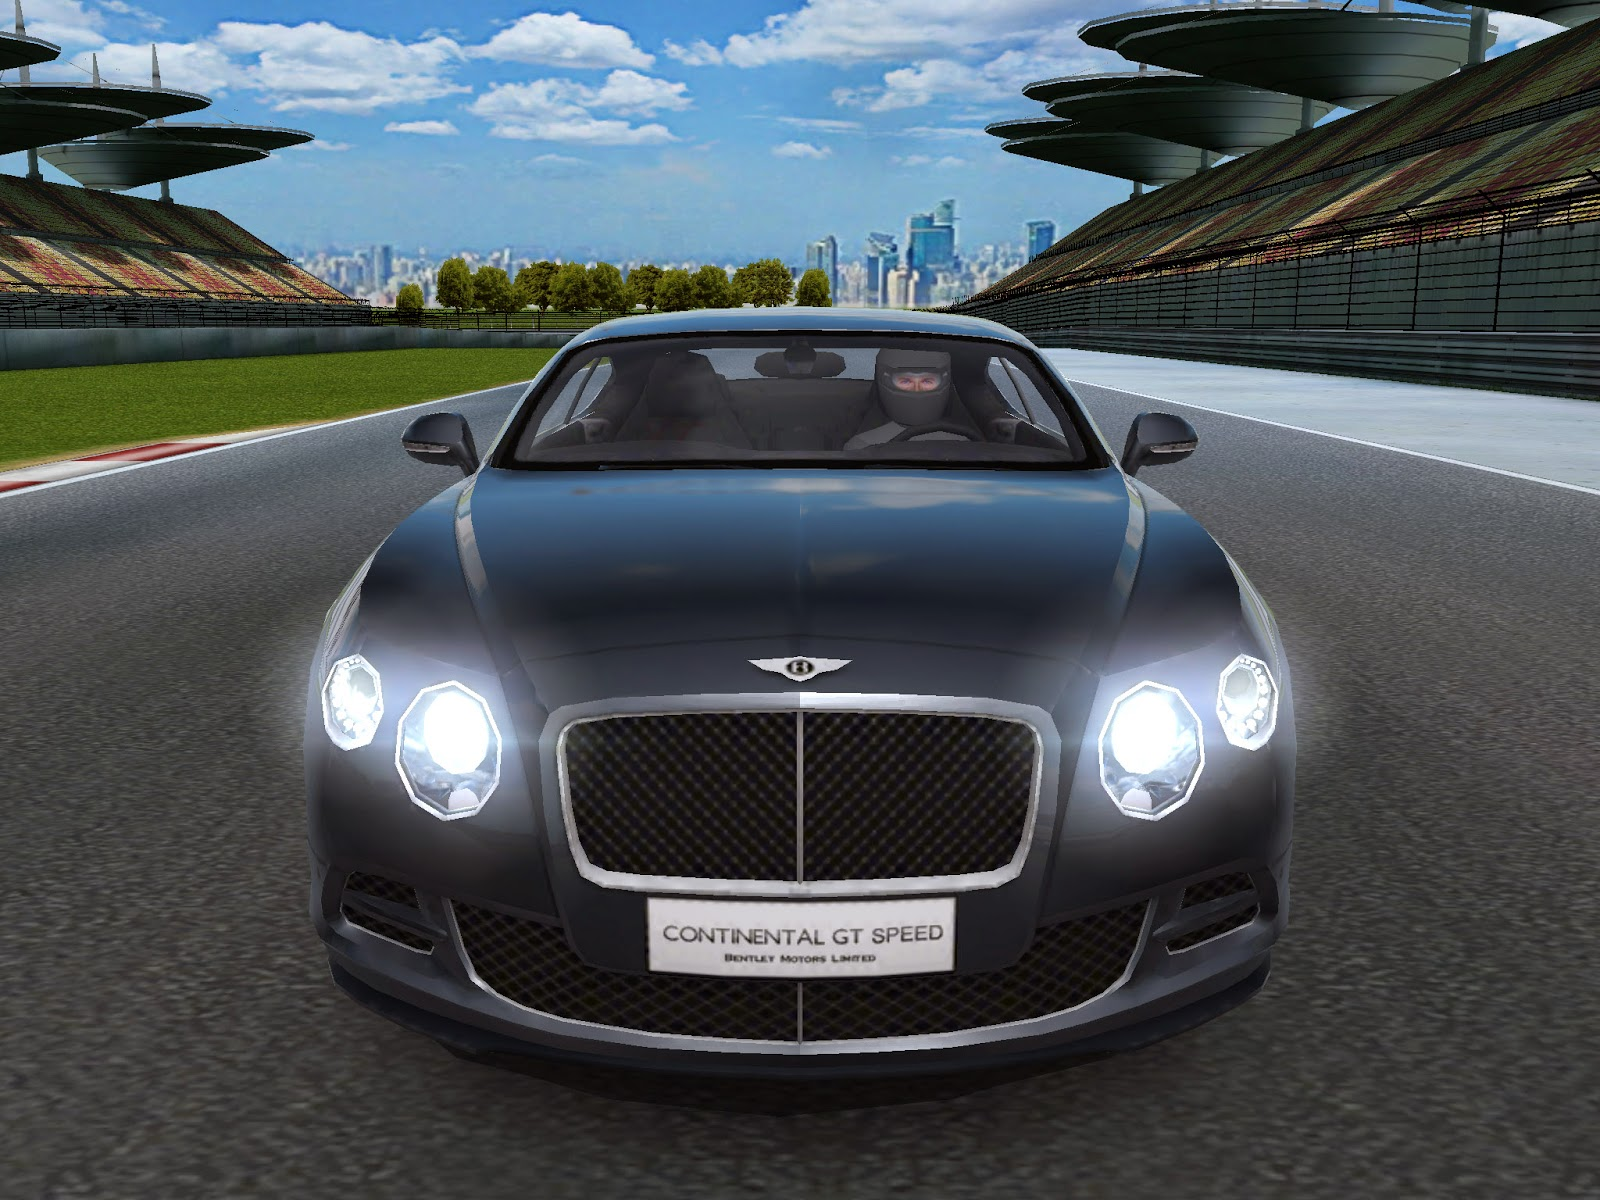 Charmant Sports Car Challenge 2 Gets New Update For IOS And Android Devices